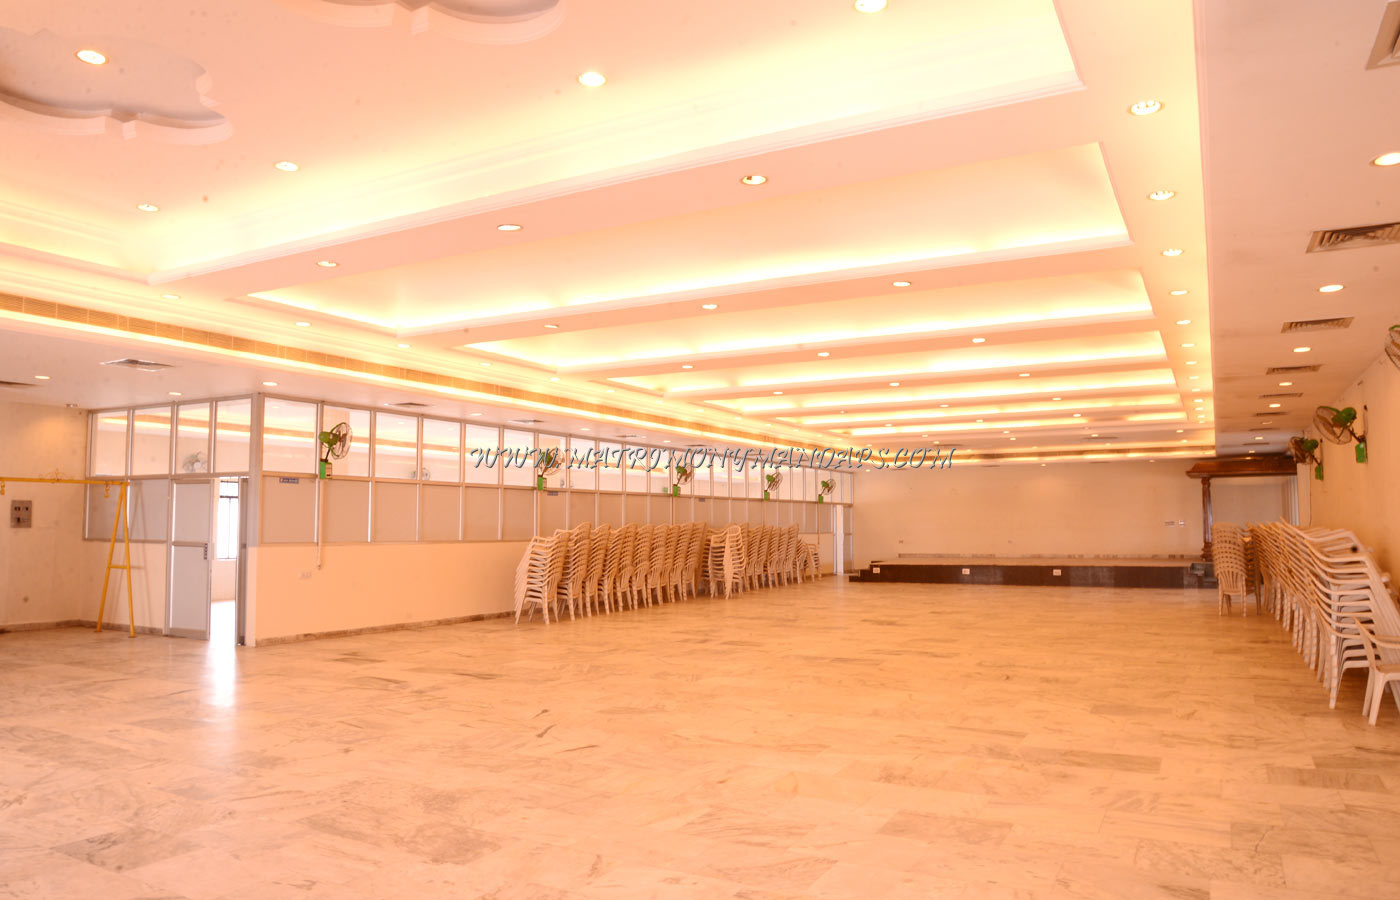 Find the availability of the Sowbhagya Mahal (A/C) in Arumbakkam, Chennai and avail special offers